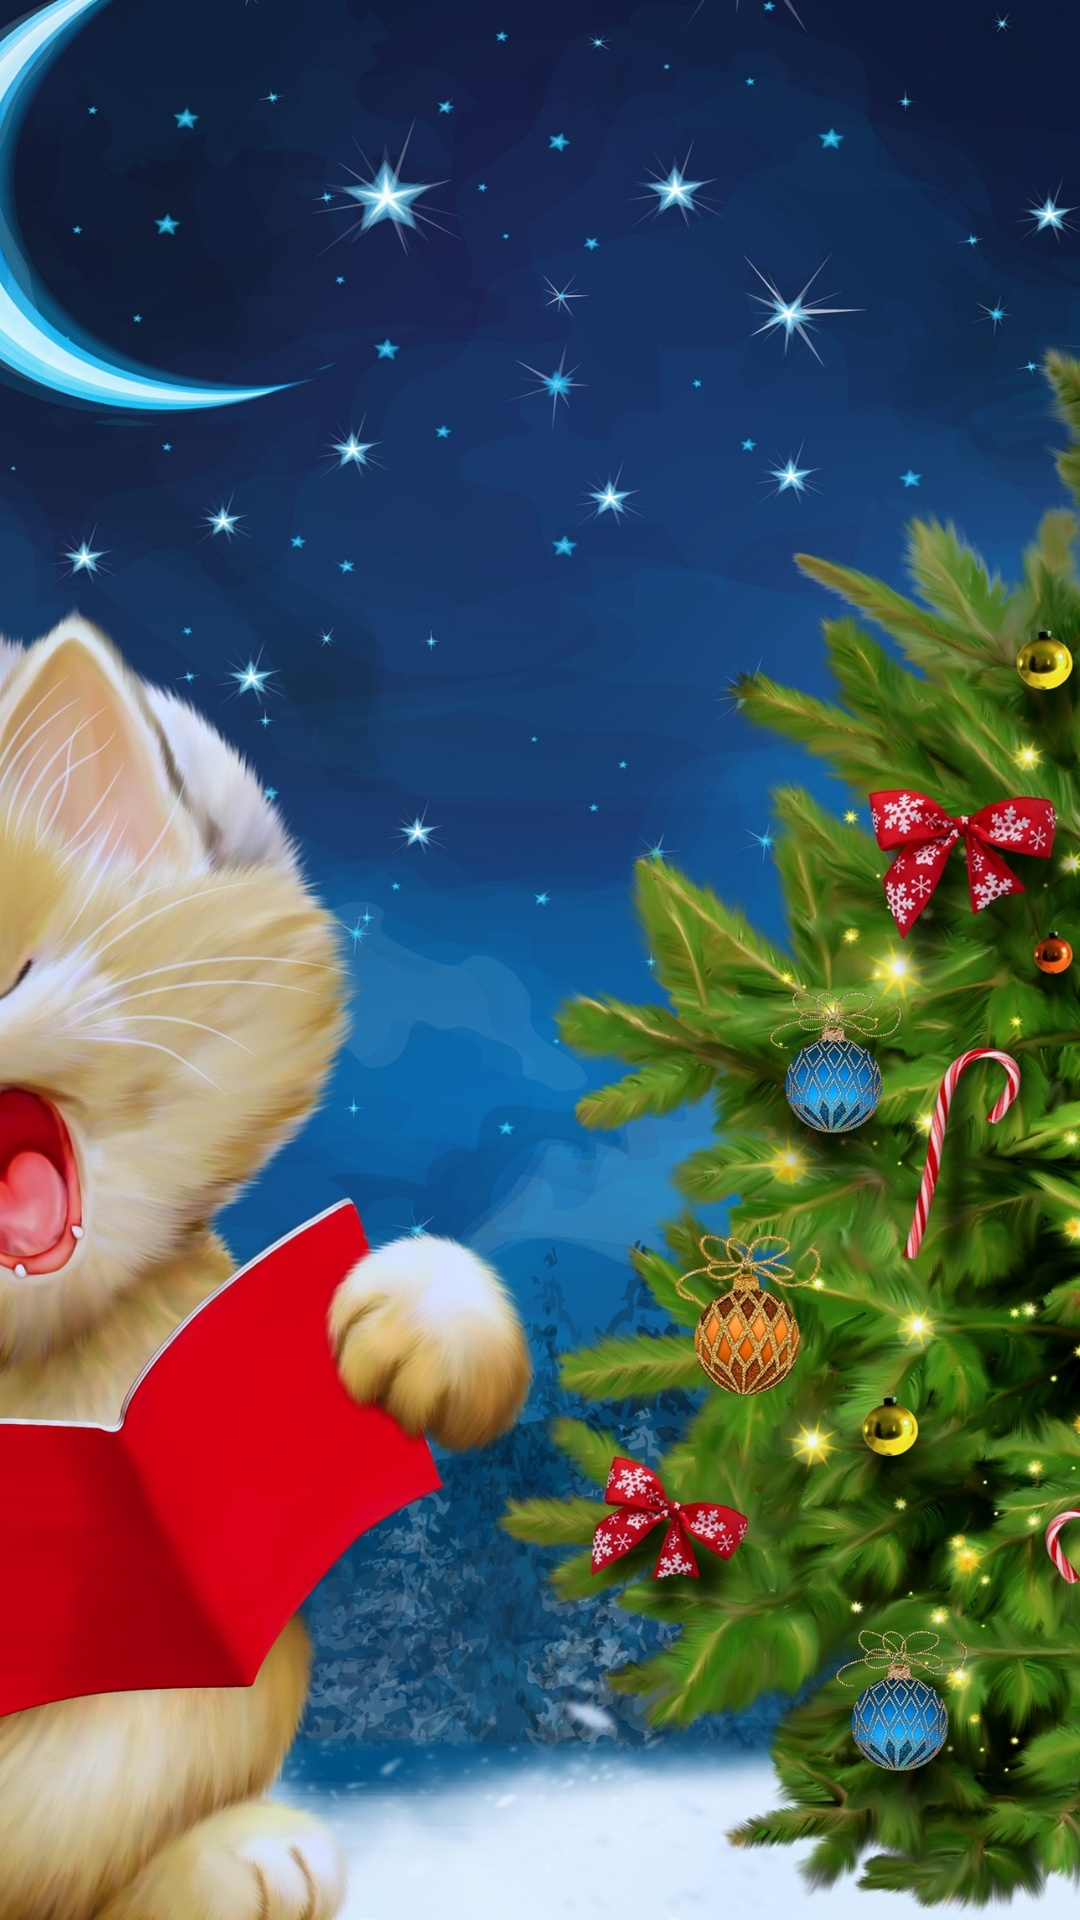 Merry Christmas kitten 4K Ultra HD wallpaper 4k WallpaperNet 1080x1920